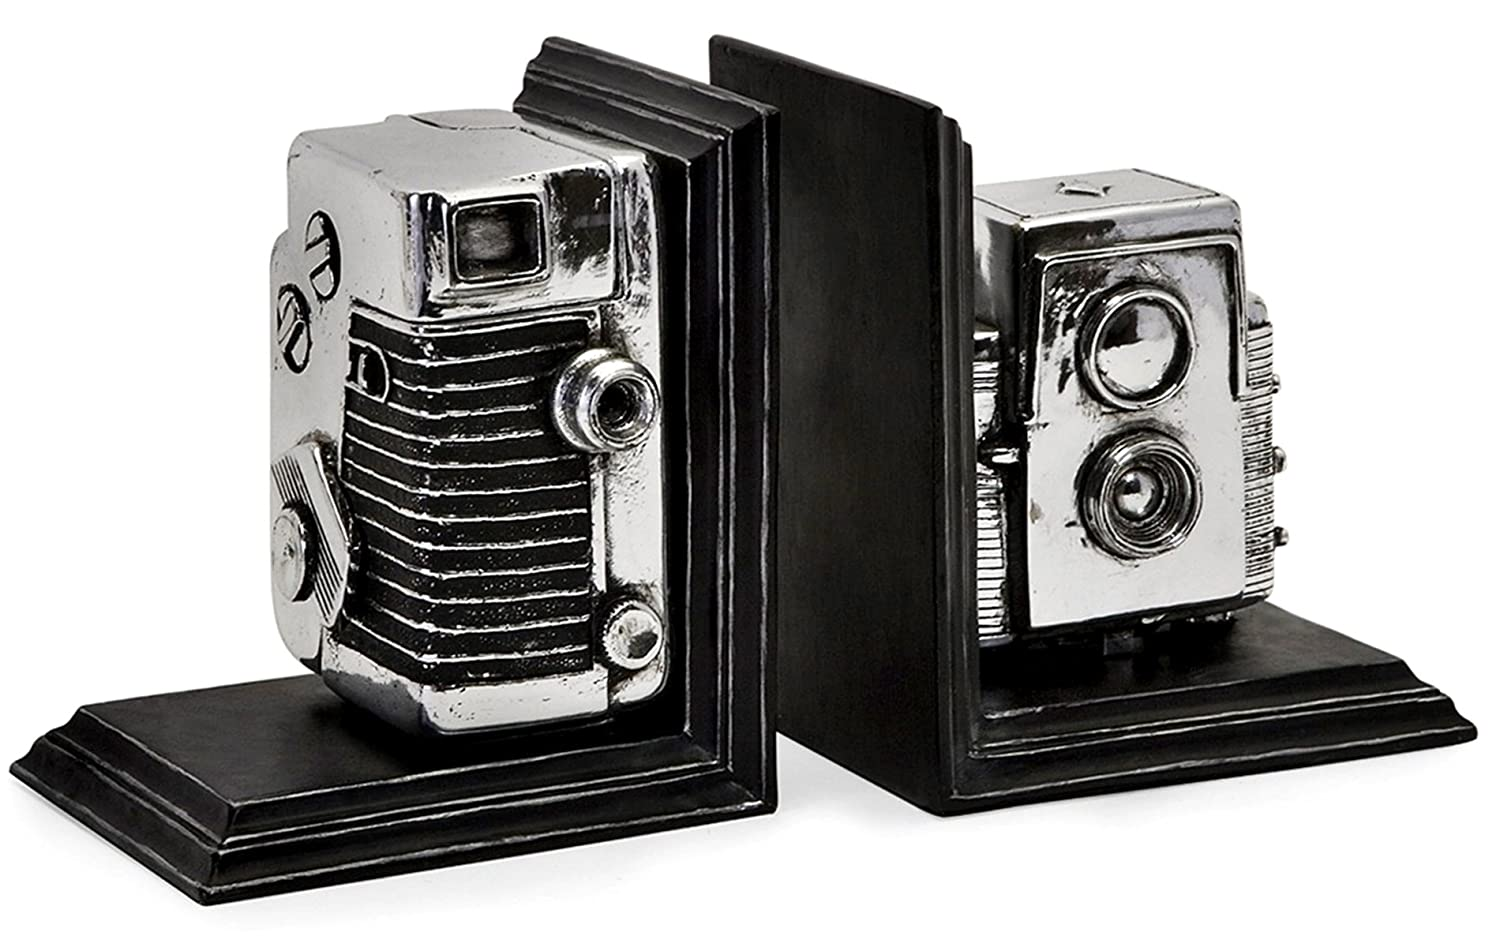 Amazon.com: #1 Expedition Vintage Camera Bookends, Black/silver: Home &  Kitchen